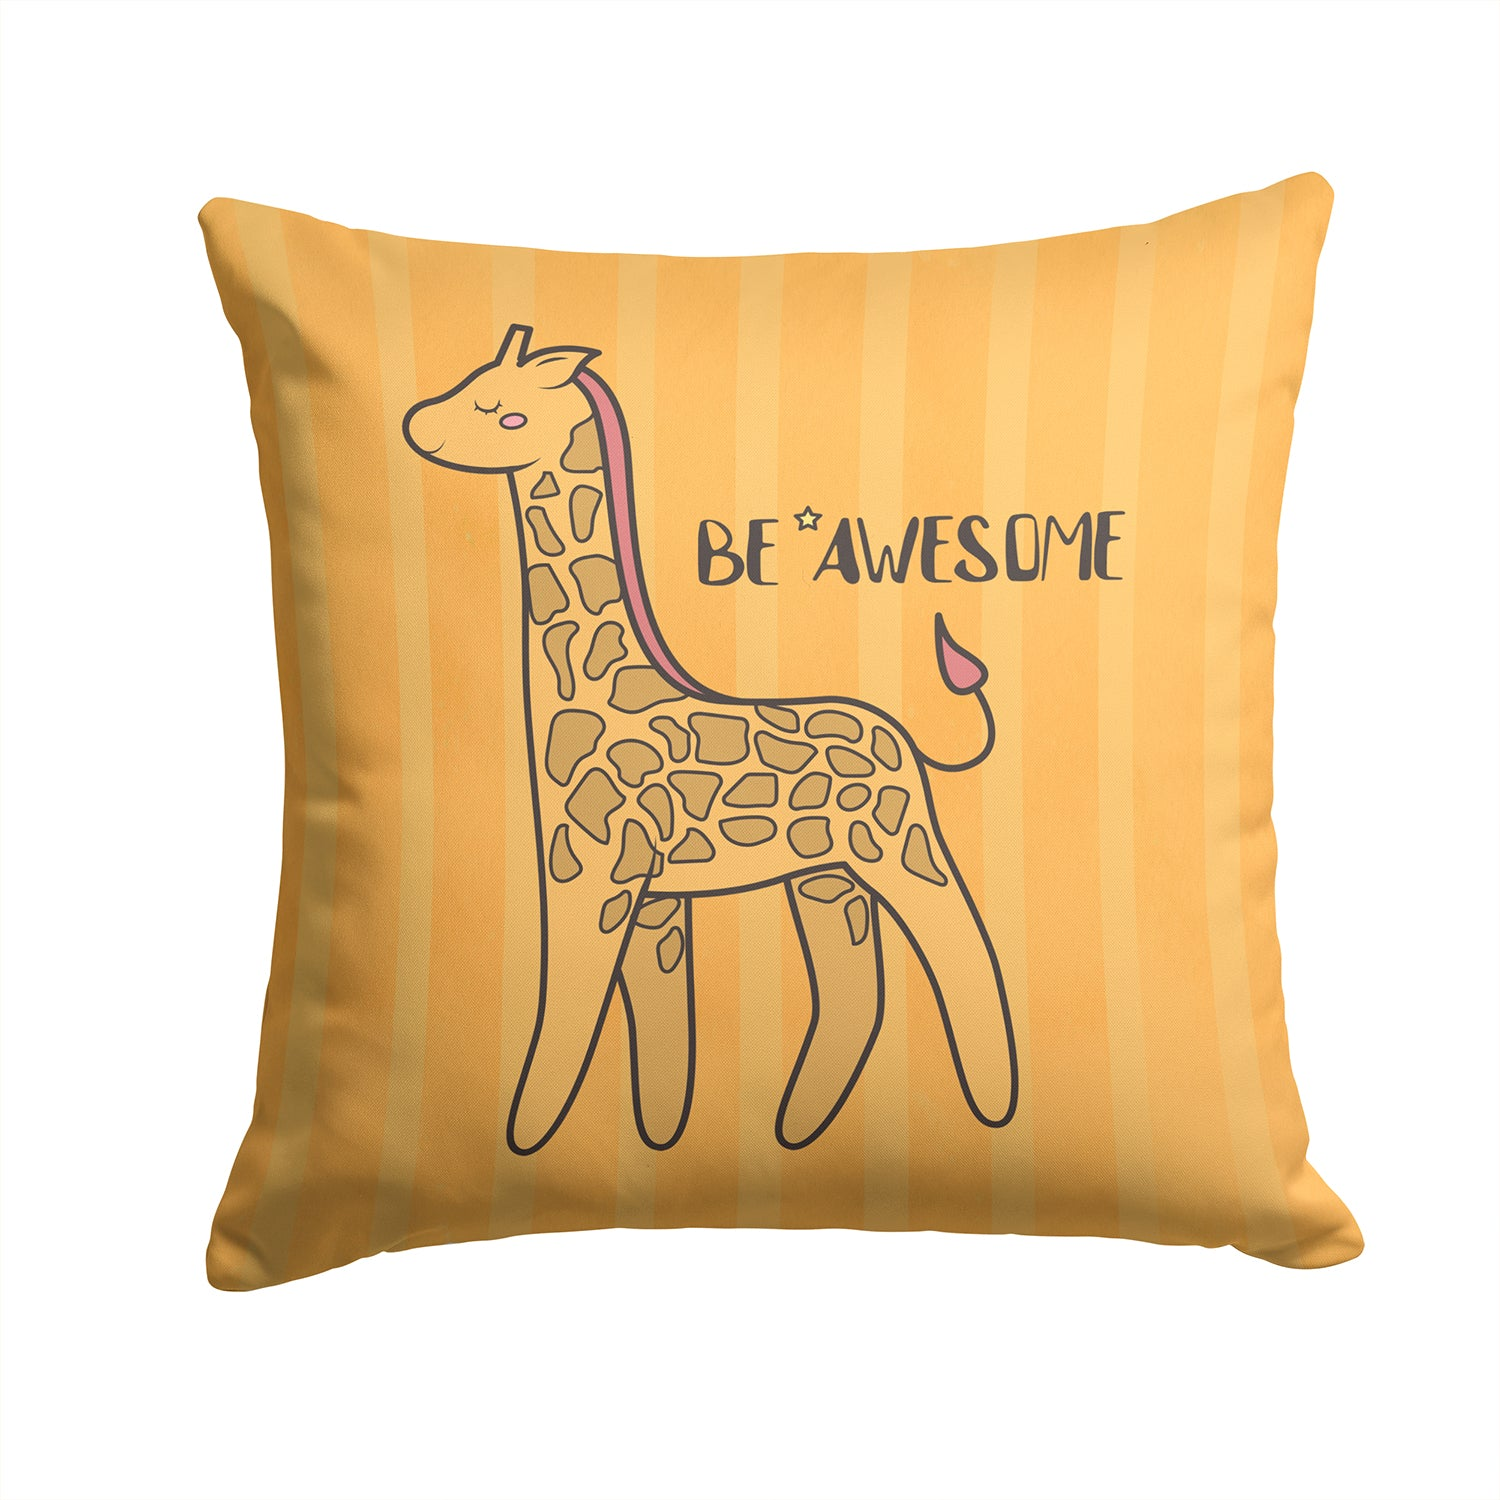 Nursery Be Awesome Griaffe Fabric Decorative Pillow BB7474PW1414 by Caroline's Treasures